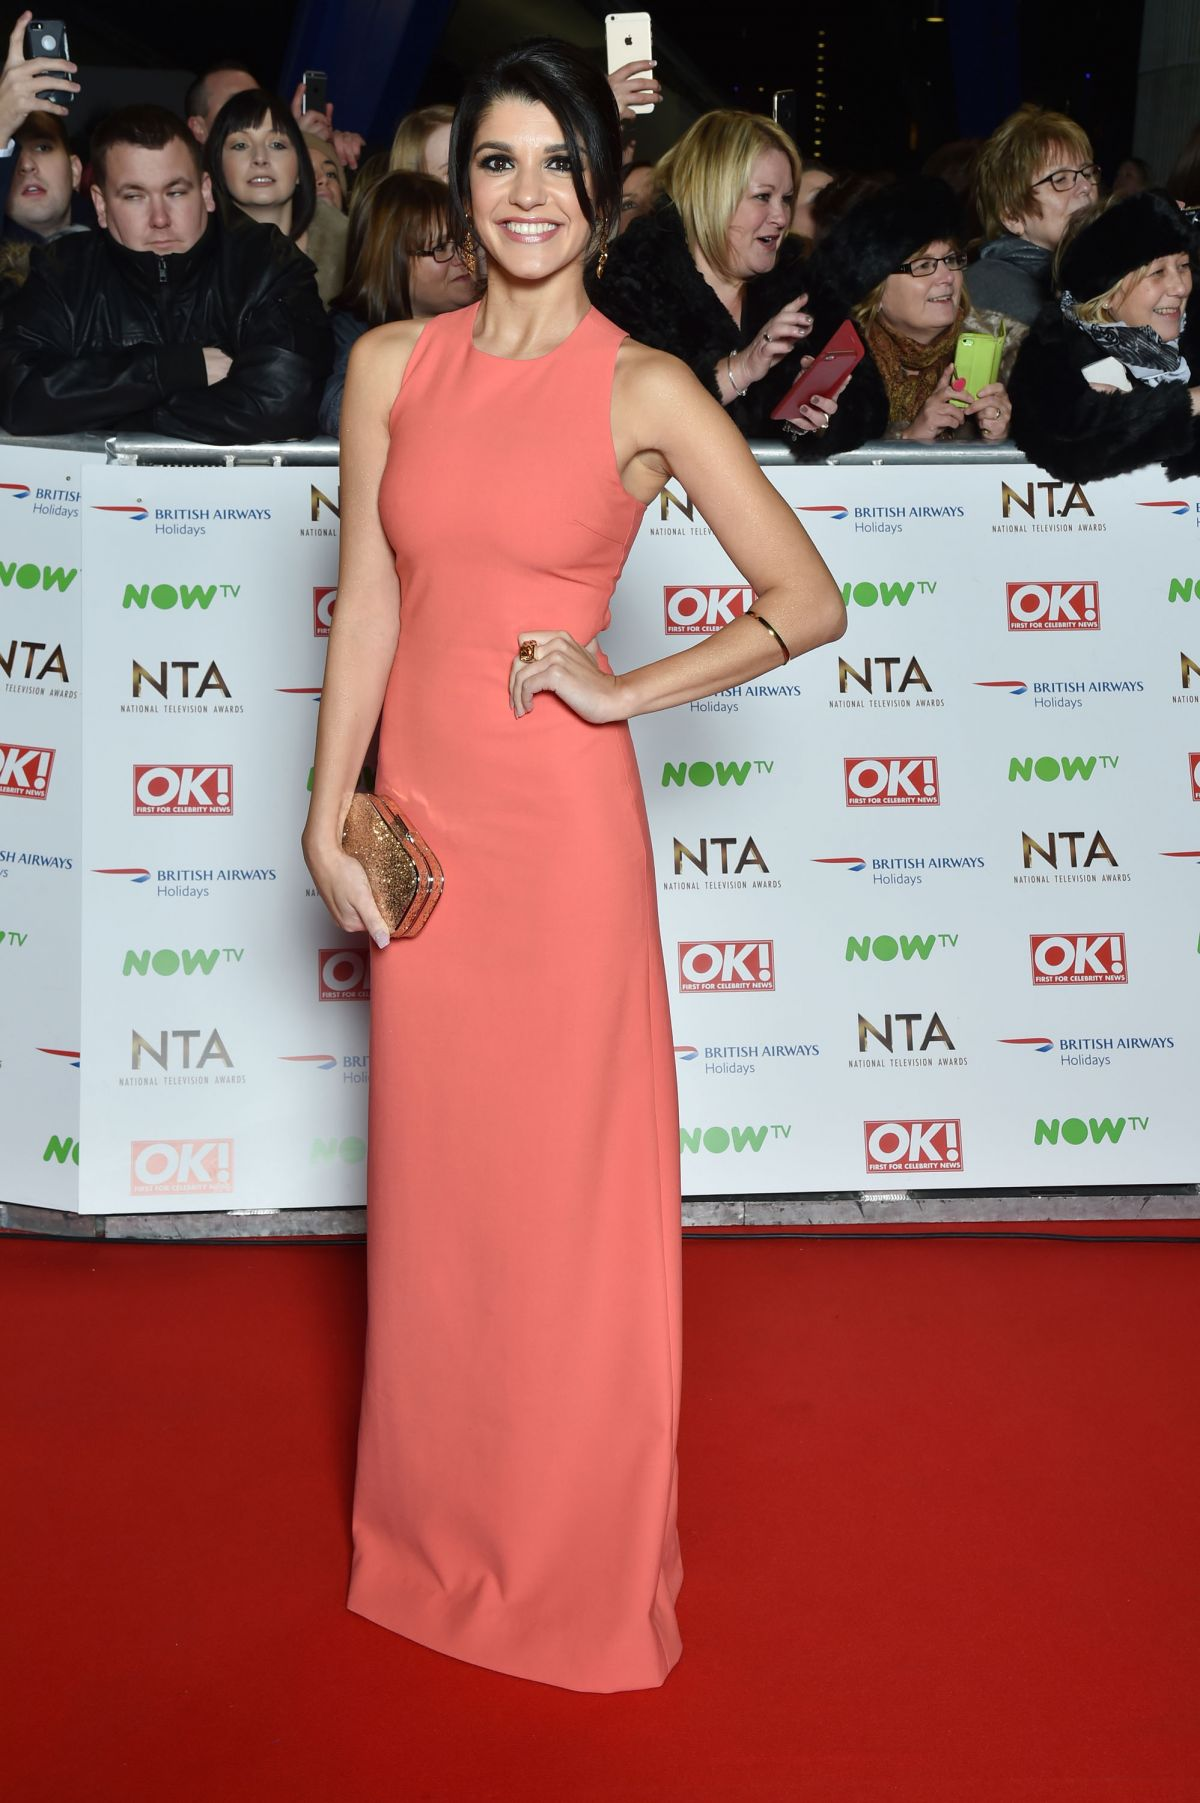 NATALIE ANDERSON at 2016 National Television Awards in London 01/20/2016